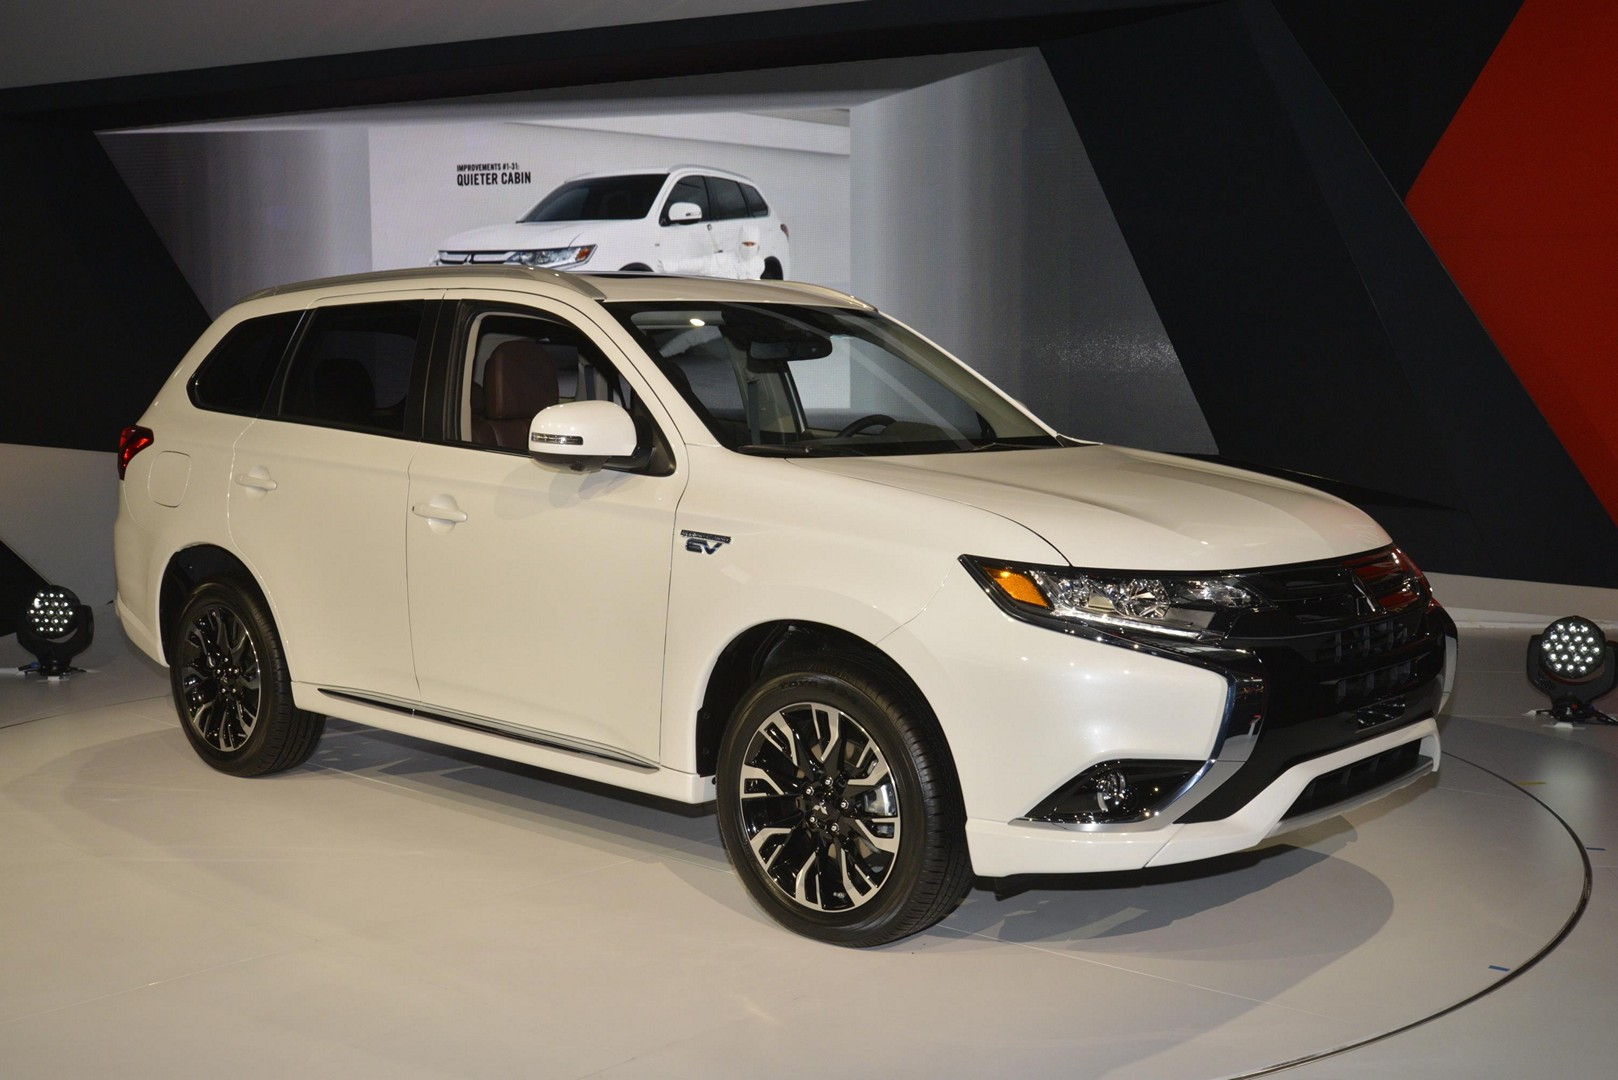 Outlander Phev Makes Us Debut Mitsubishi Promises Suv Focus